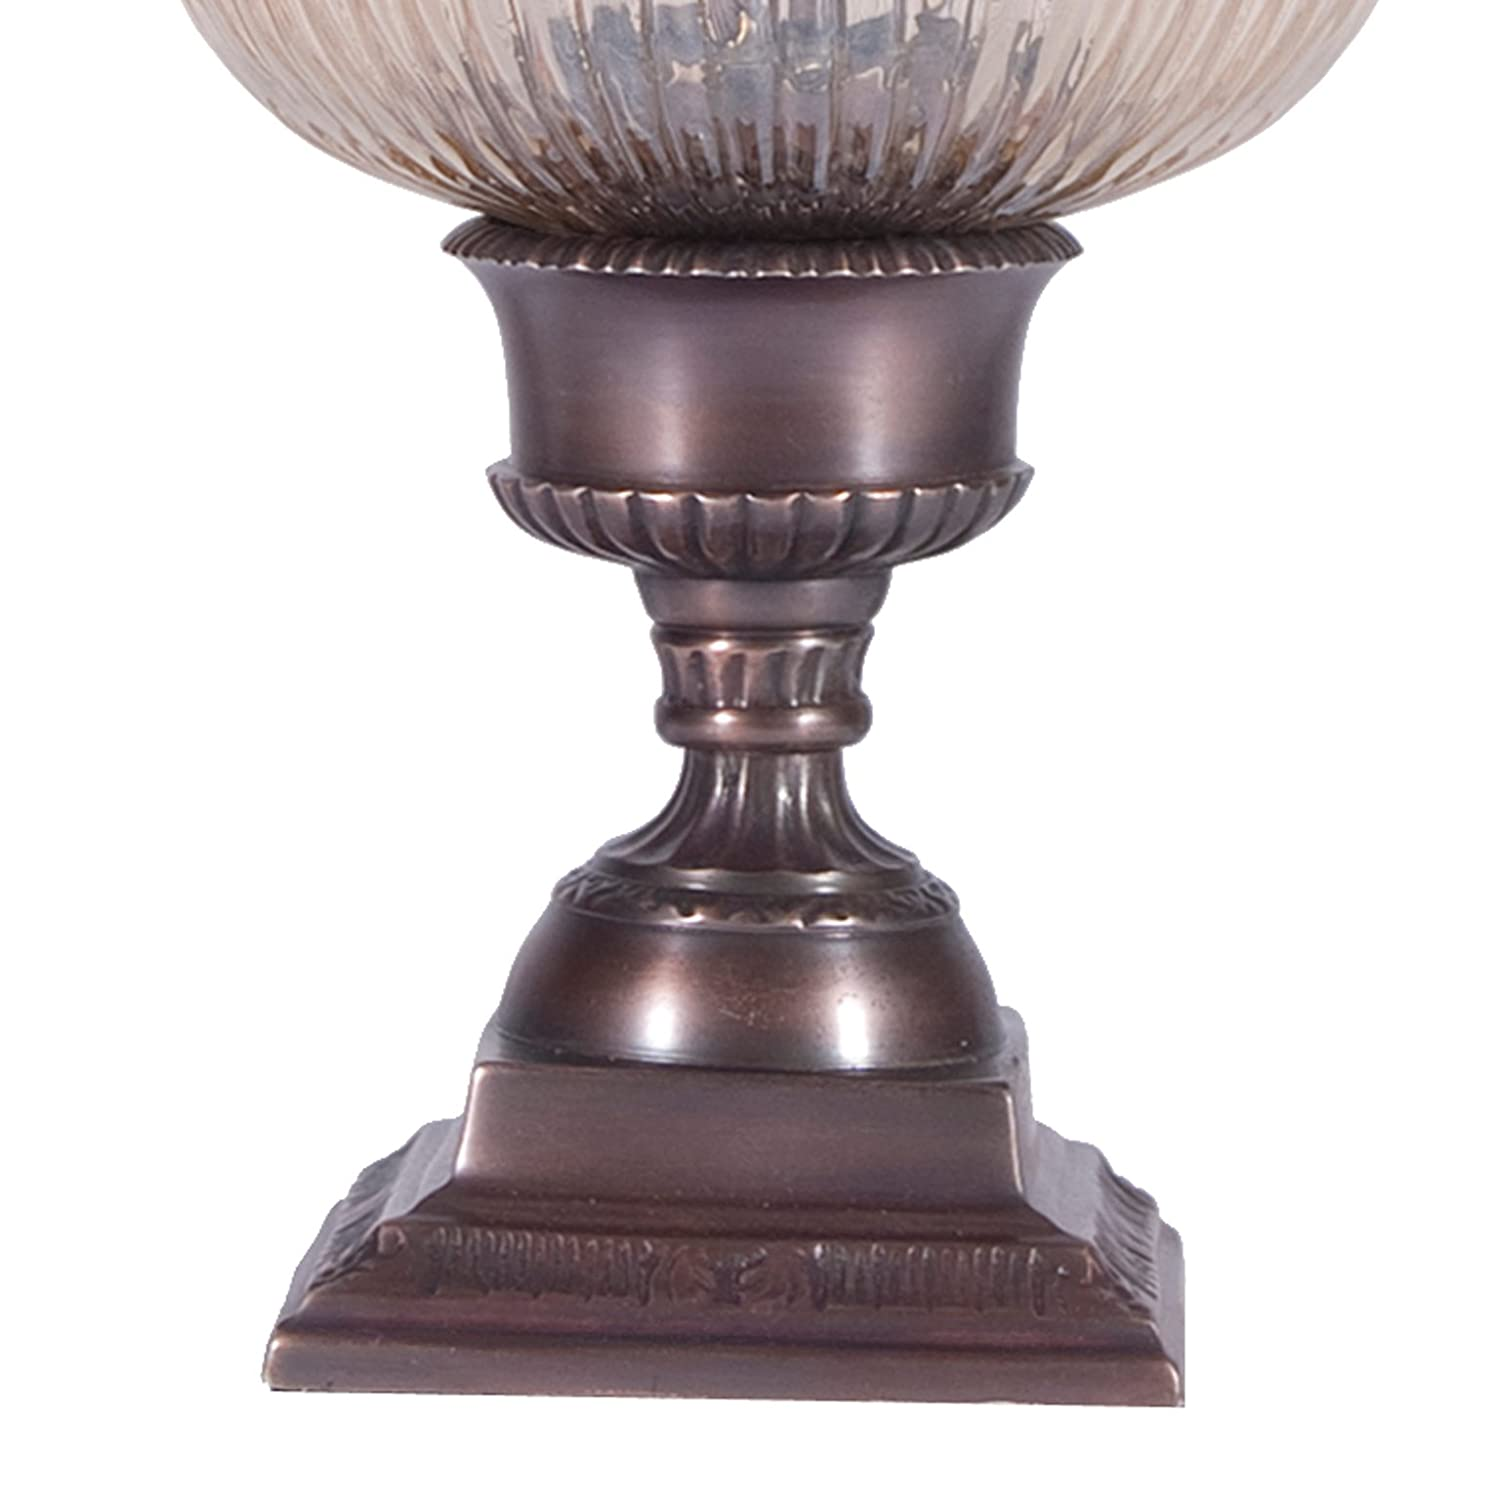 Small Glass Shaded Torchiere Accent Table Lamp   Uplight Table Lamp    Amazon.com